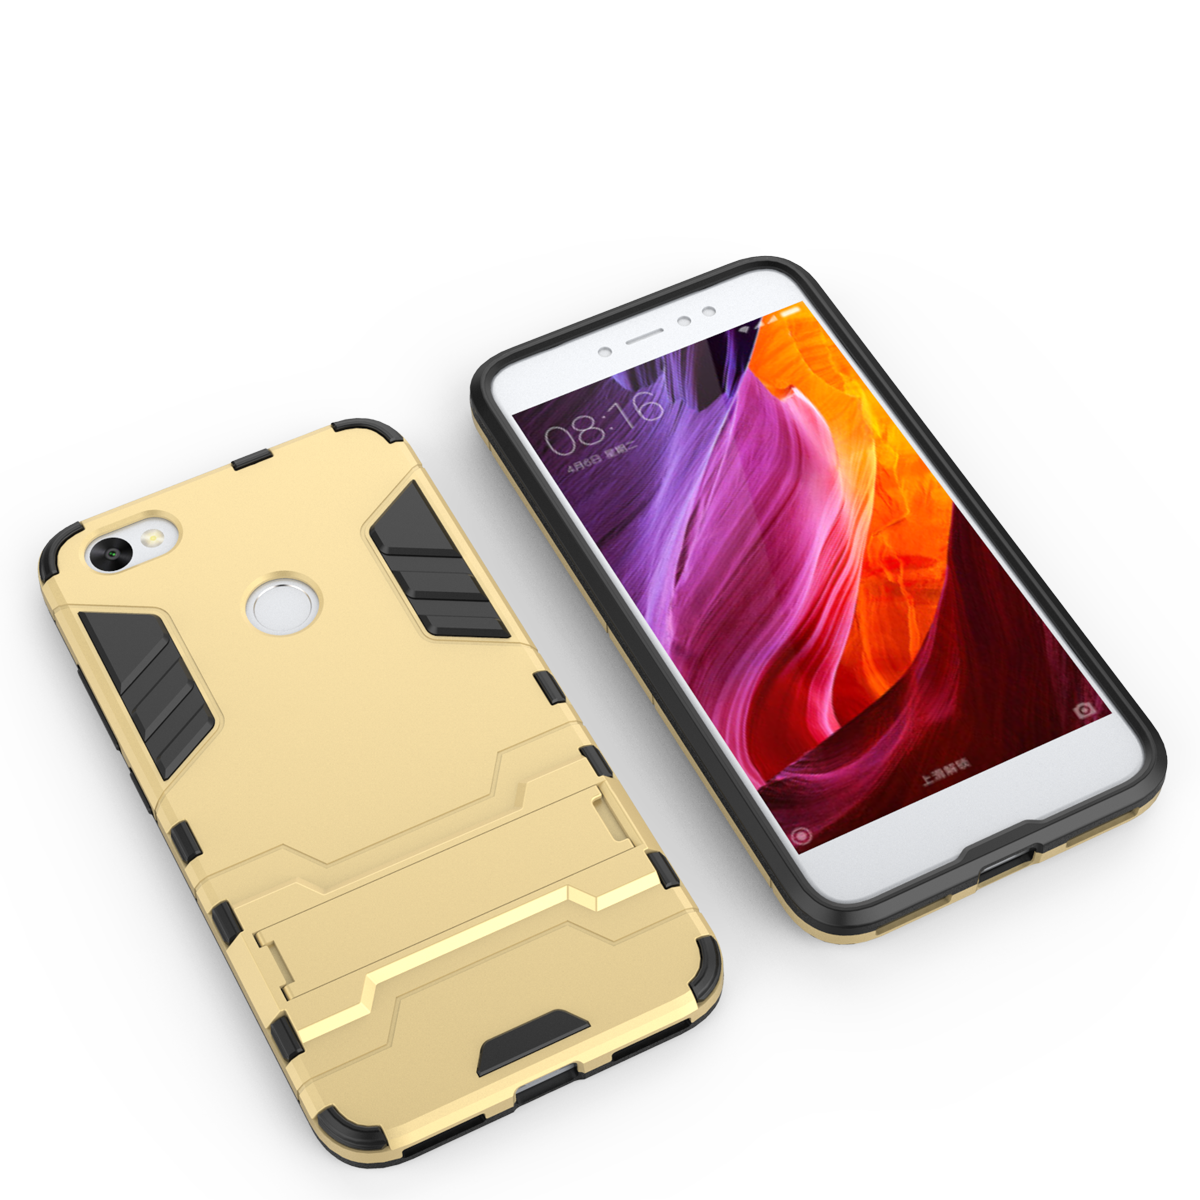 For Xiaomi Redmi Note 5a Prime Case Iron Man Armor Shockproof Heavy Protection Back Cover Hybrid Silicon Pc Shell Stand Shield Protection Back Silicone Back Coverarmor Case Aliexpress